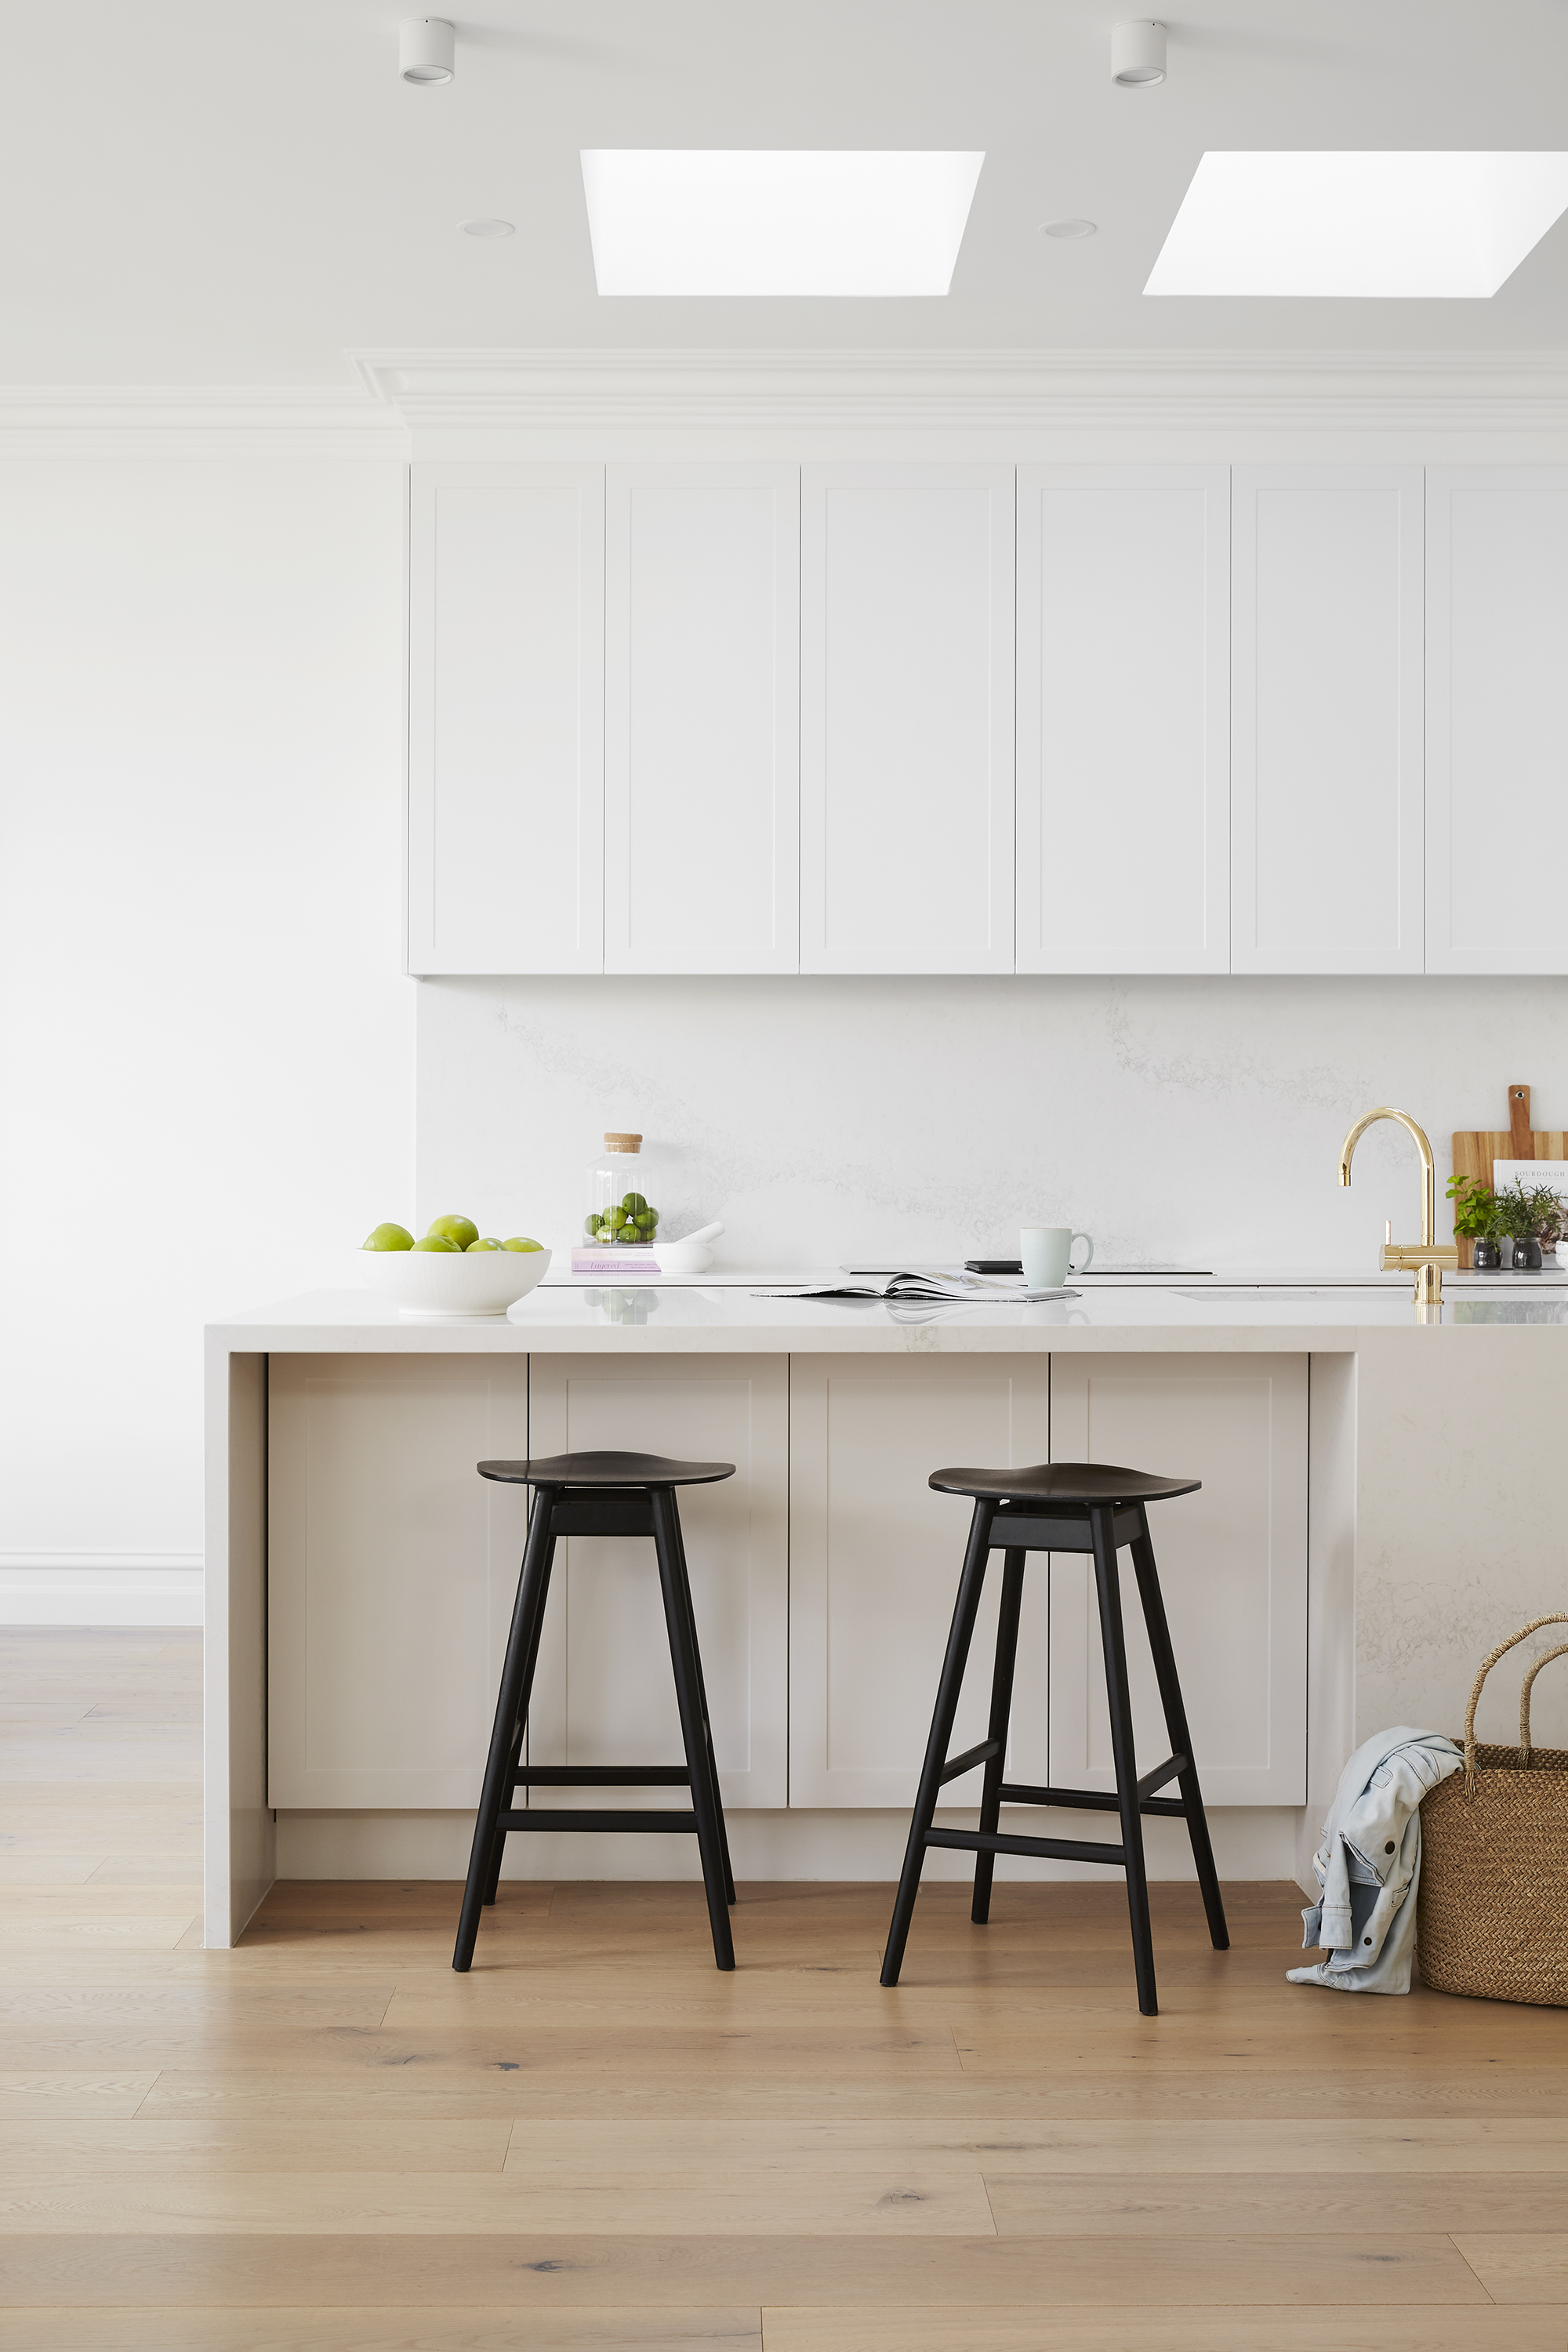 Julia and Sasha went with a timeless, all-white kitchen by Freedom Kitchens. All appliances by NEFF; integrated fridge/freezer from Bosch; Caesarstone 'Calacatta Nuvo' benchtop and splashback; Sussex tapware and Franke white sinks from Reece; skylights by Velux.